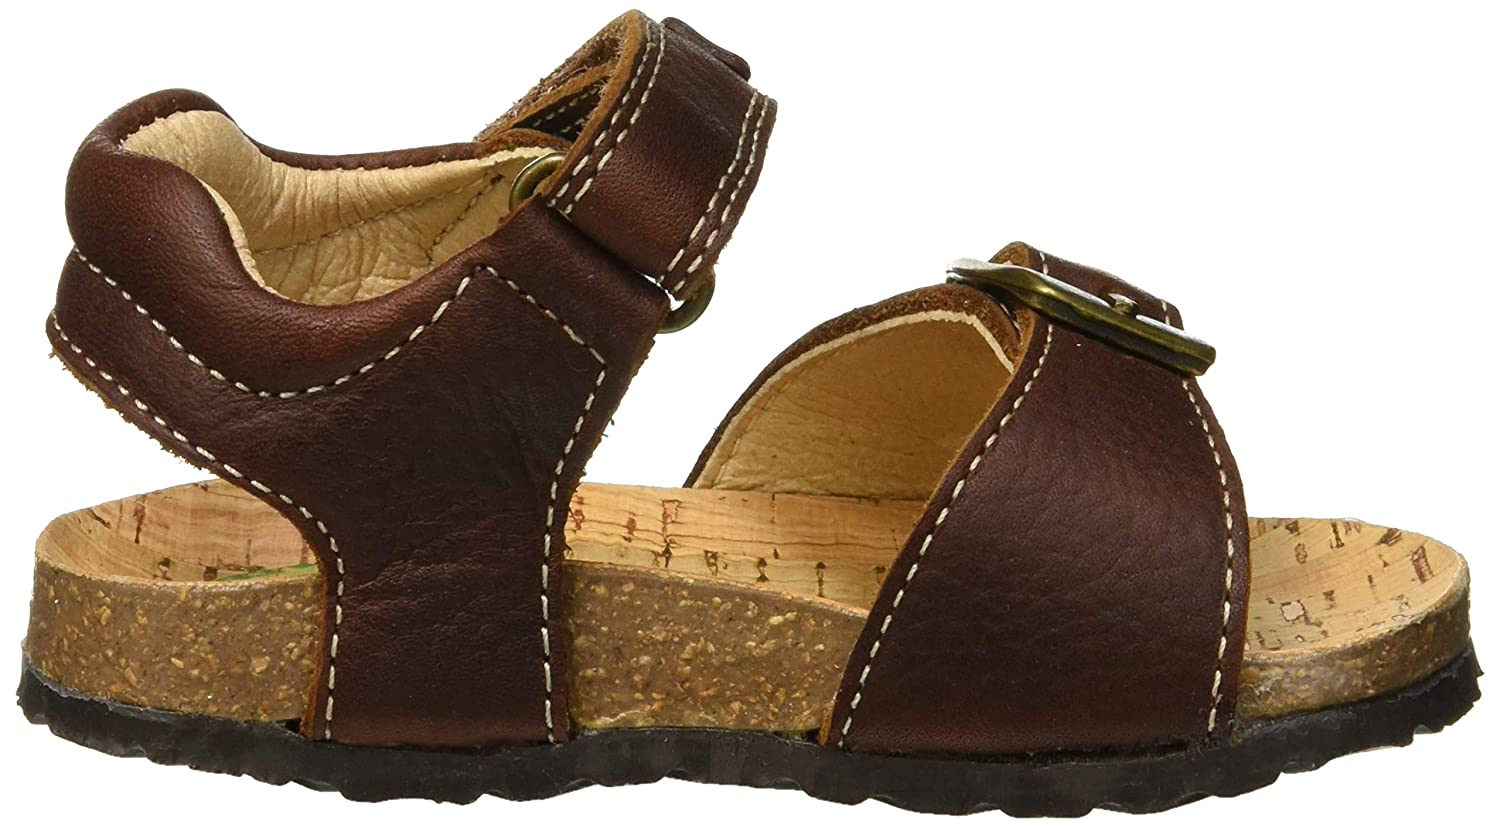 Marr/ón 590594 7.5 UK Brown Pablosky Boys Open Toe Sandals